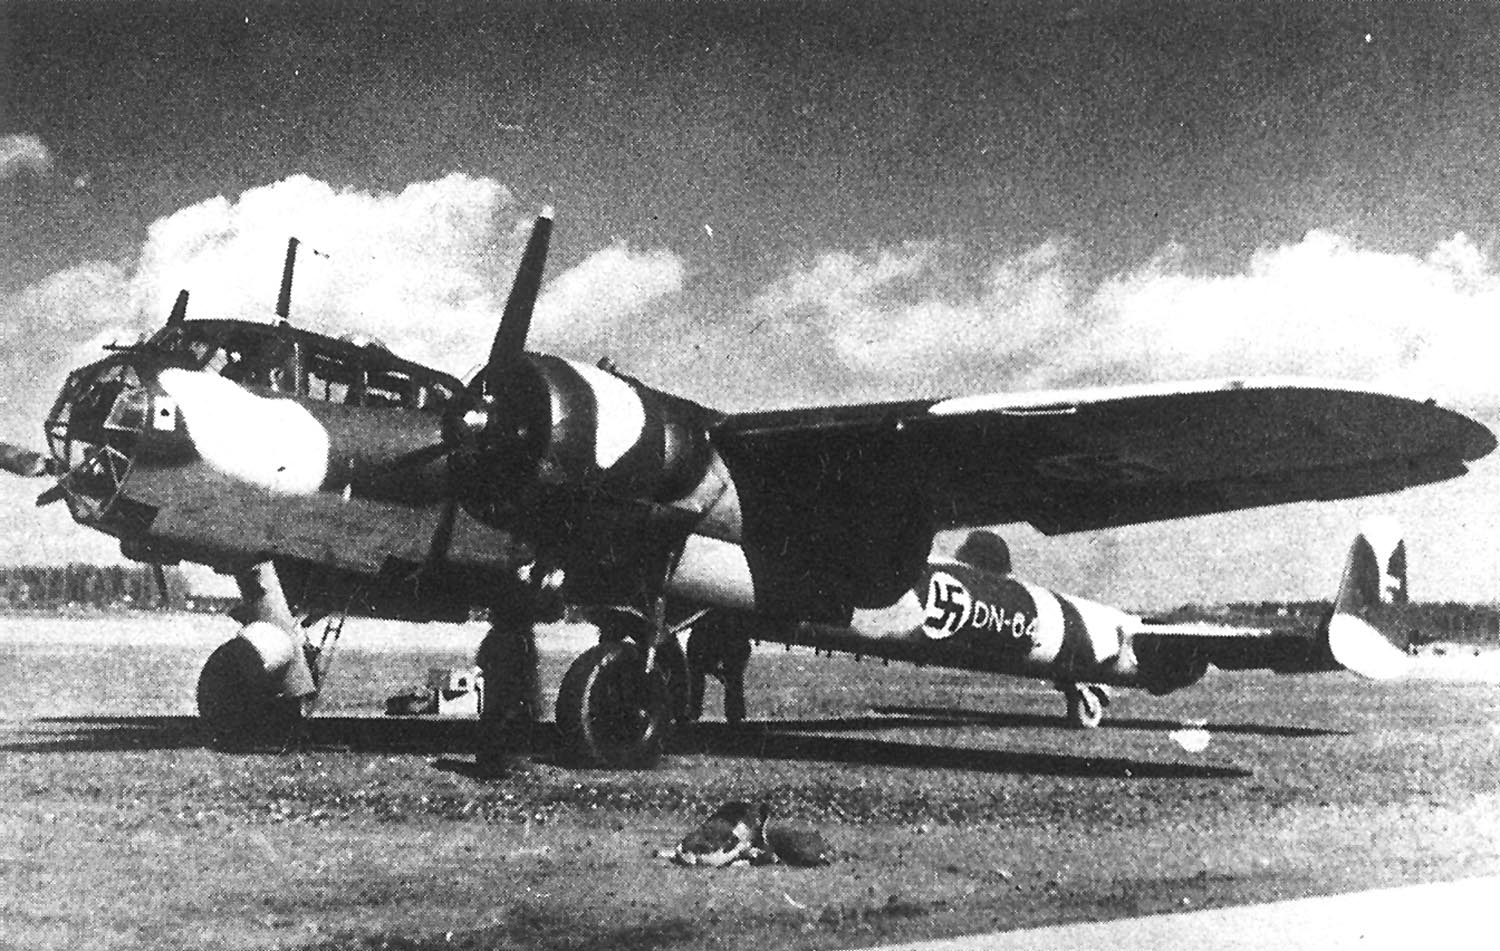 Image of Dornier Do 17